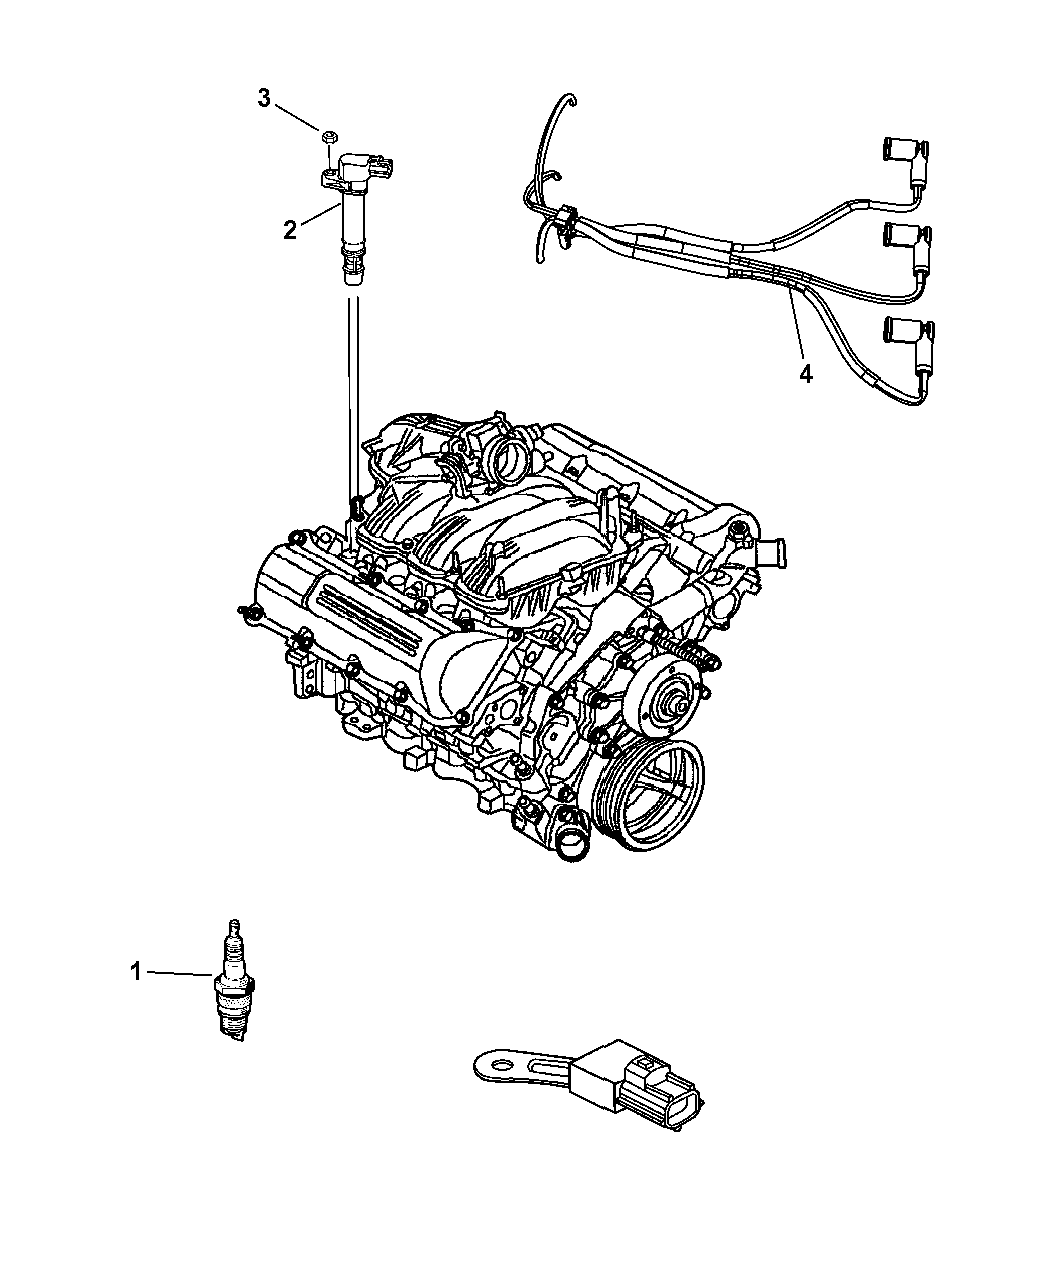 dodge 3.7l engine diagram 2010 dodge dakota spark plugs  ignition wires and coils  2010 dodge dakota spark plugs  ignition